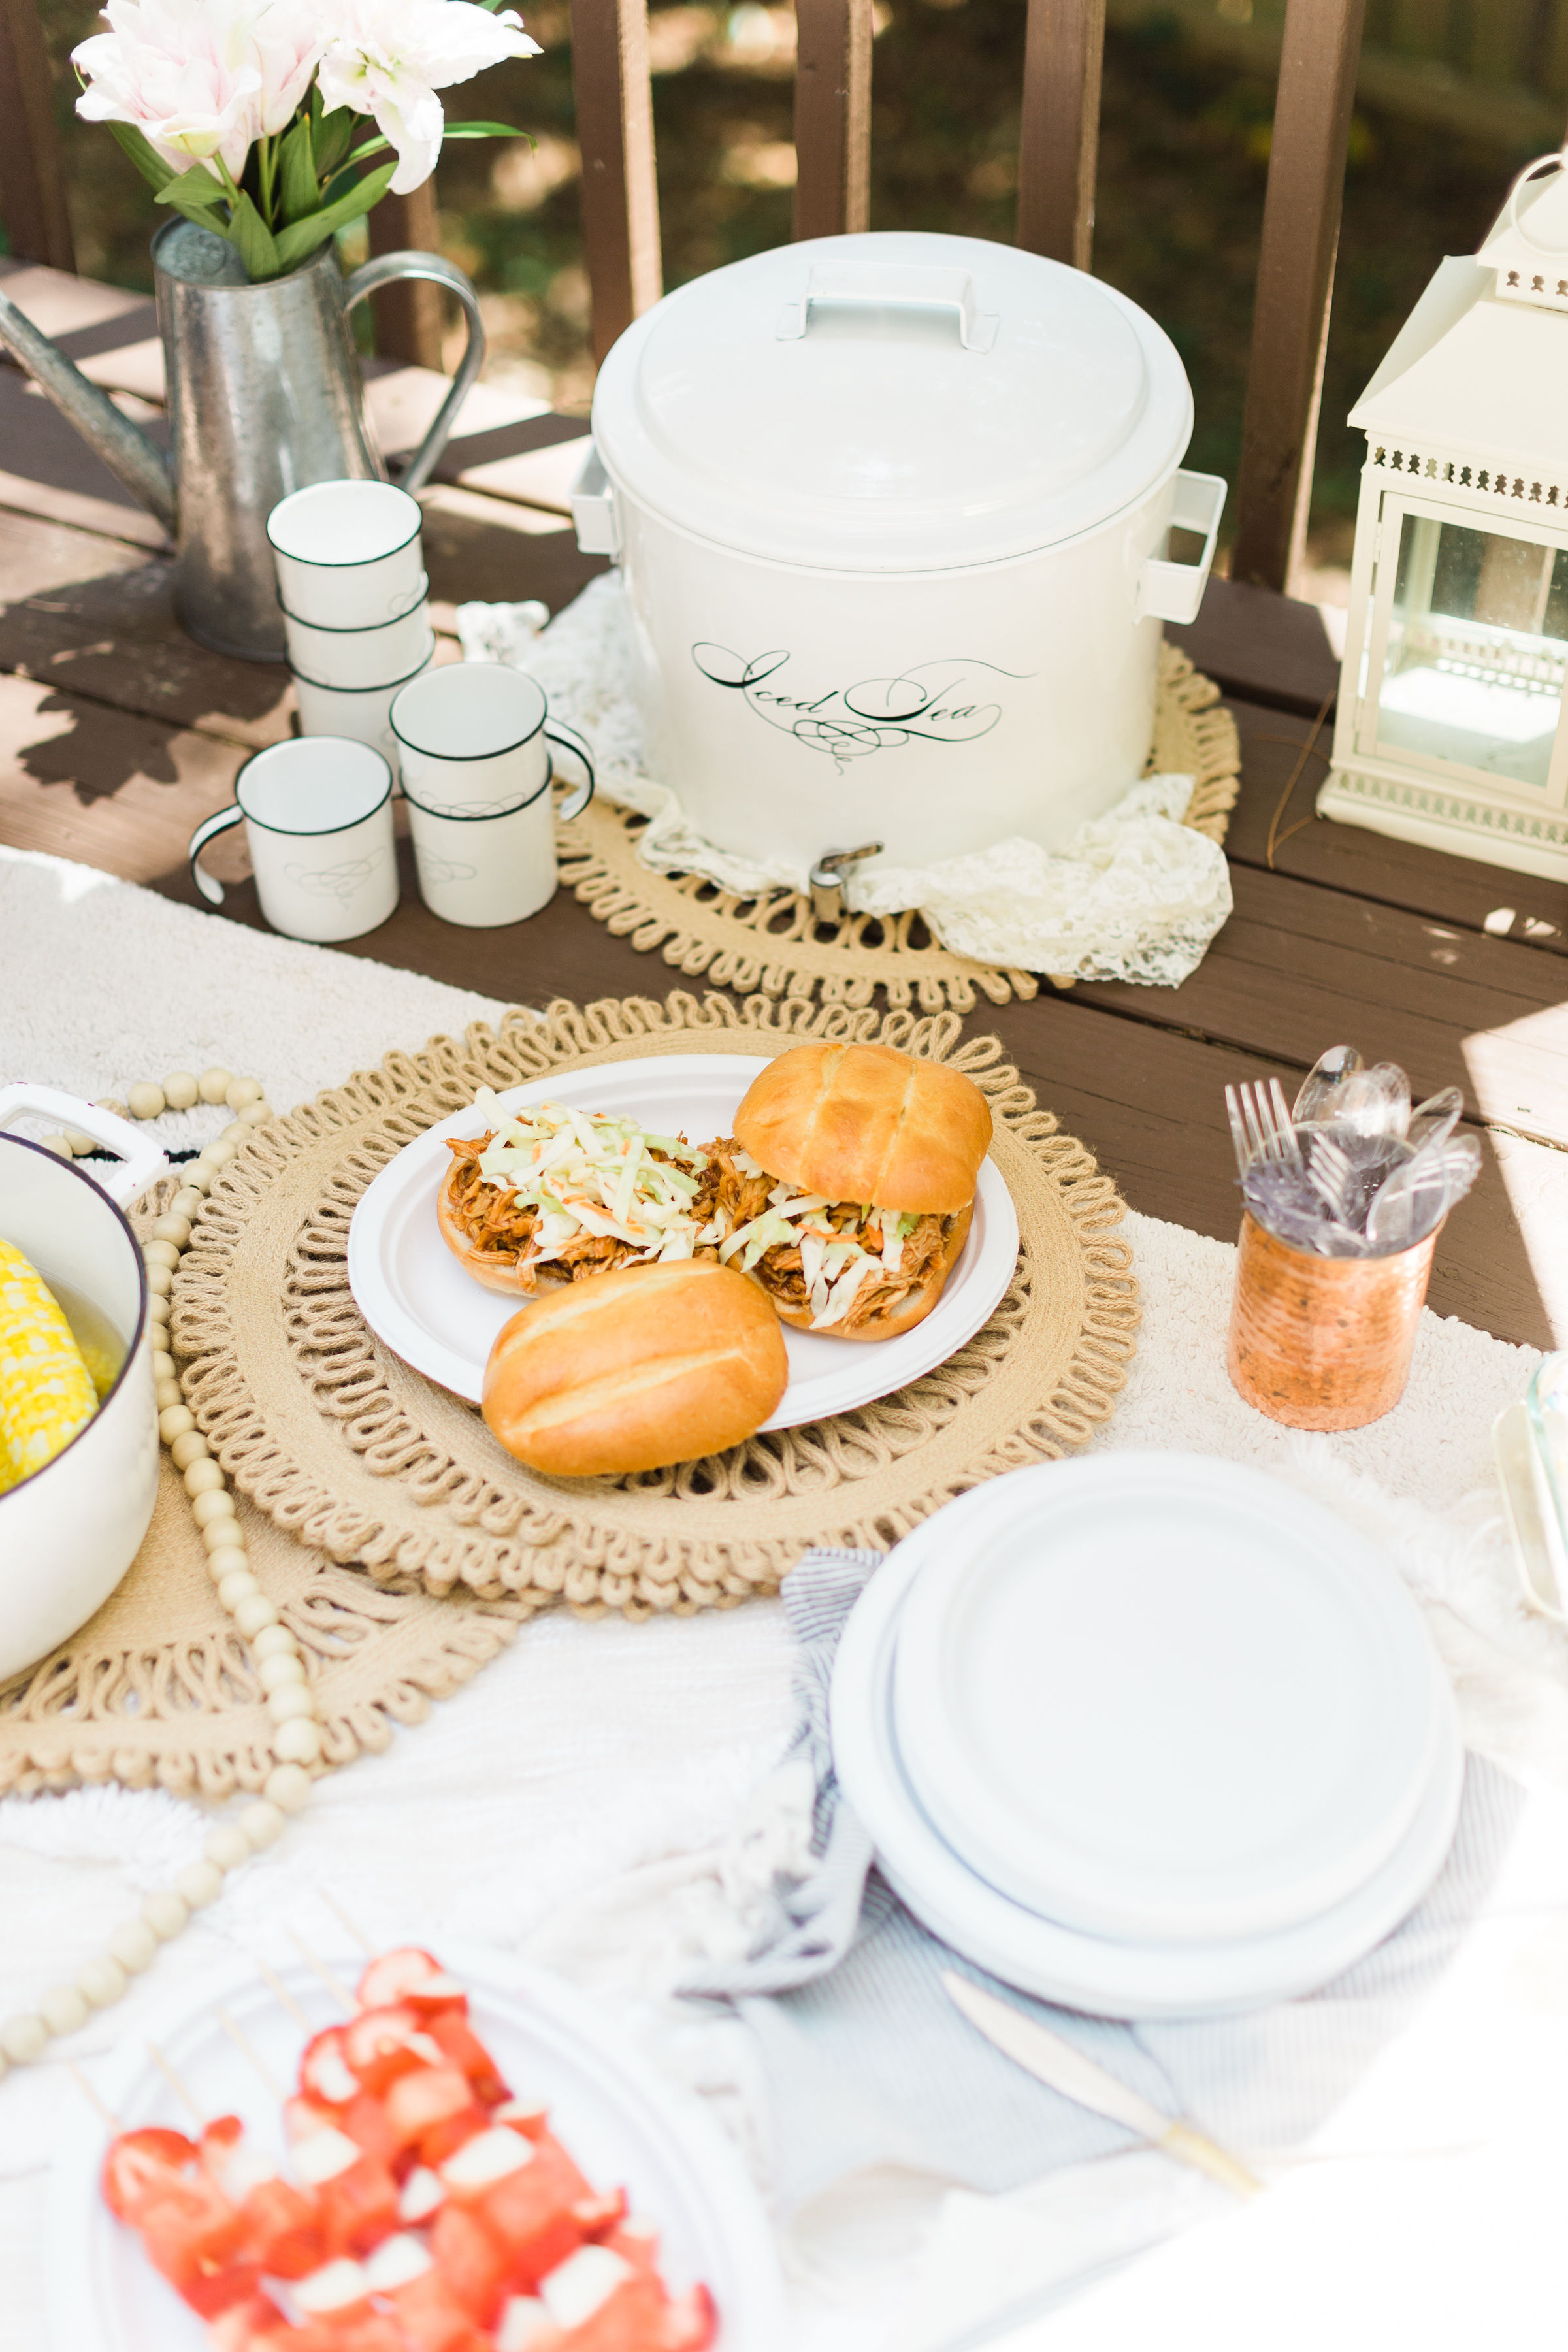 Soak up the great outdoors and serve dinner outside this summer. Here's how to throw a simple backyard BBQ picnic your whole family will love! | glitterinc.com | @glitterinc